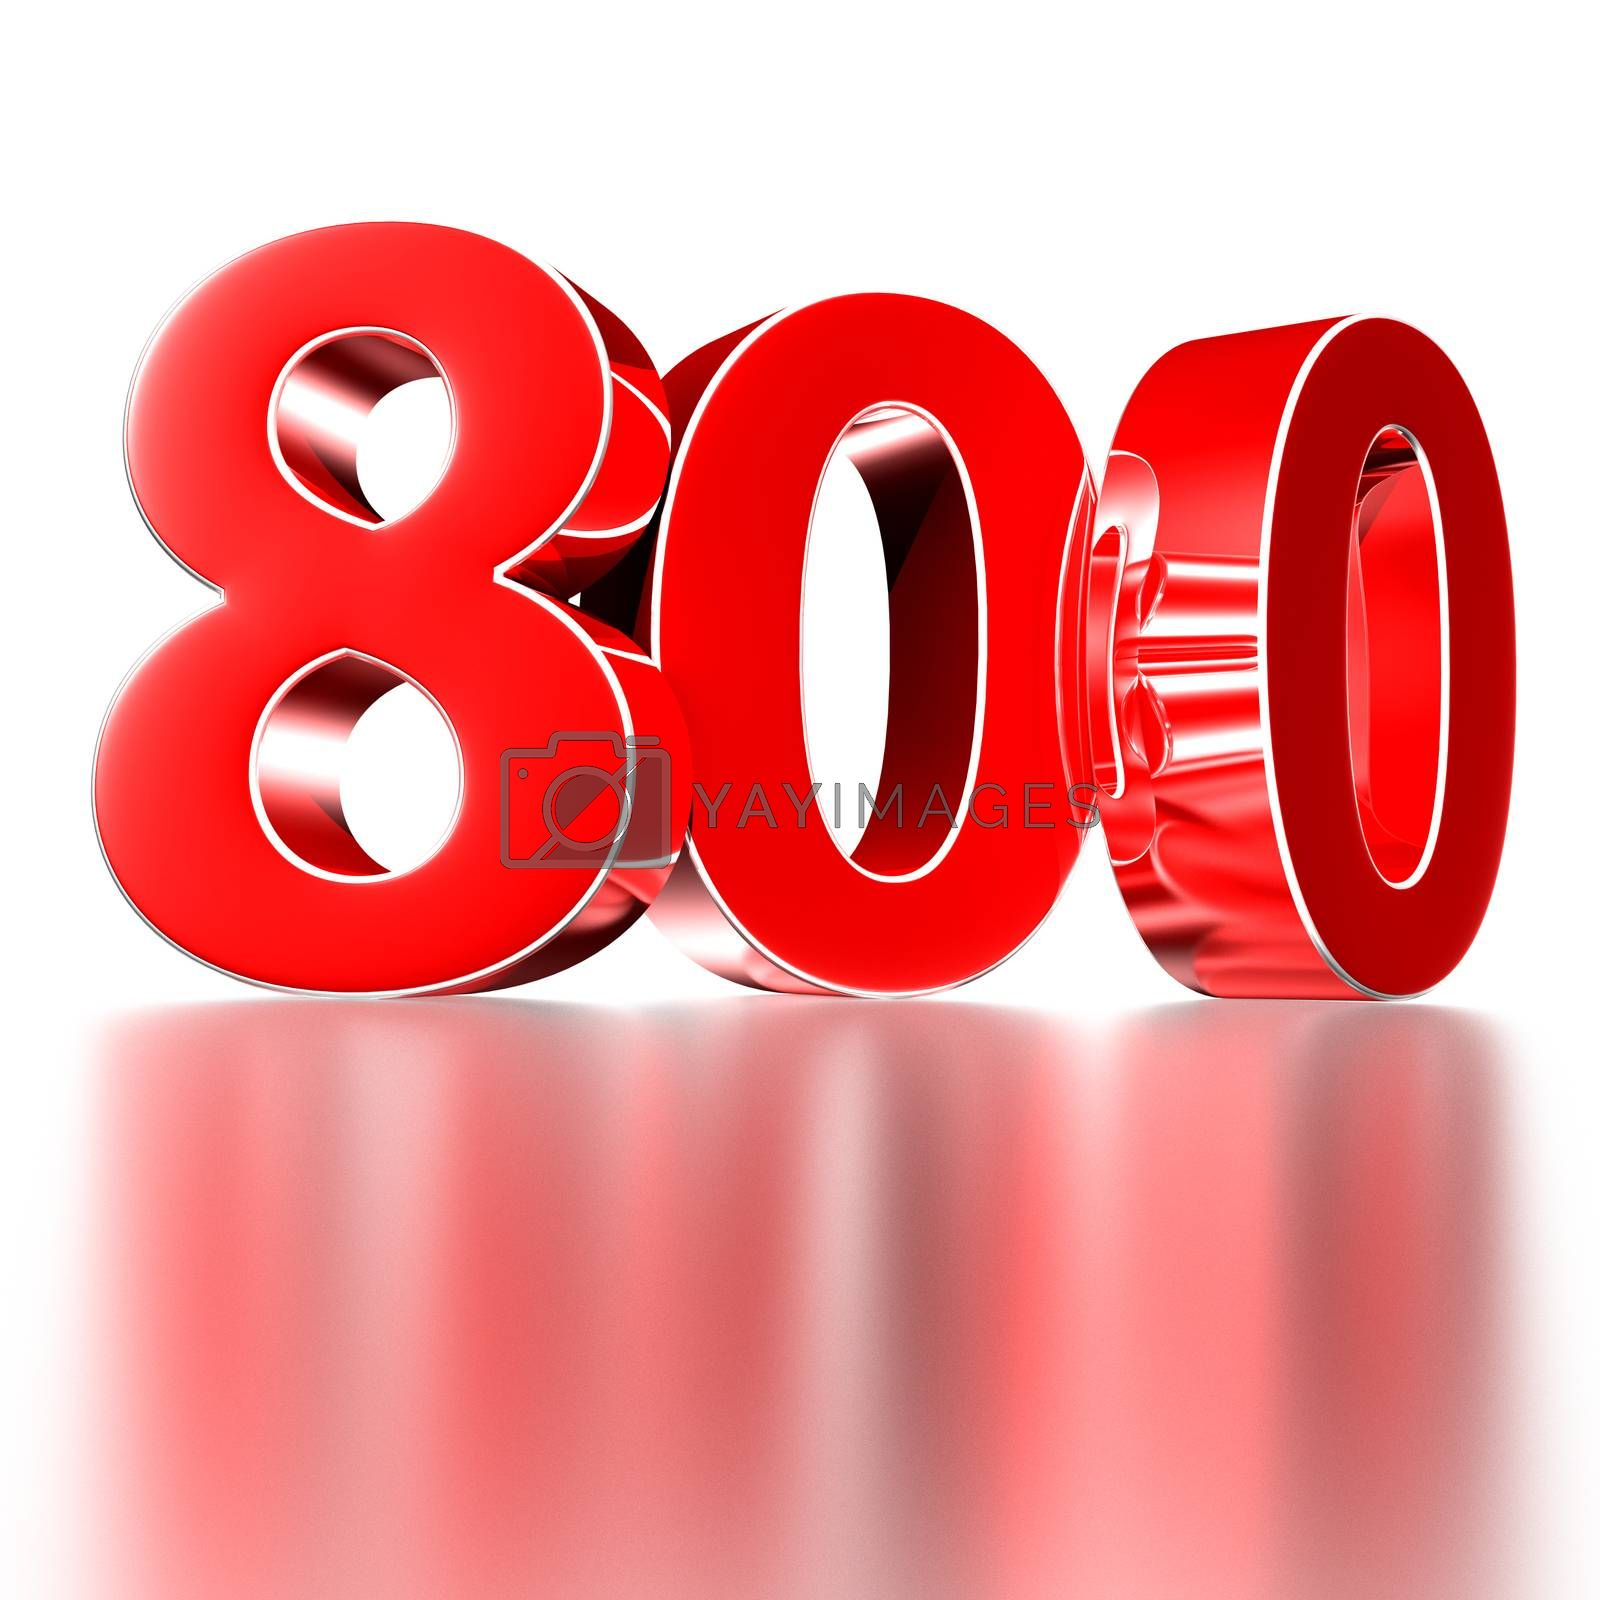 3D illustration Red number 800 isolated on a white background there is a reflection.(with Clipping Path).